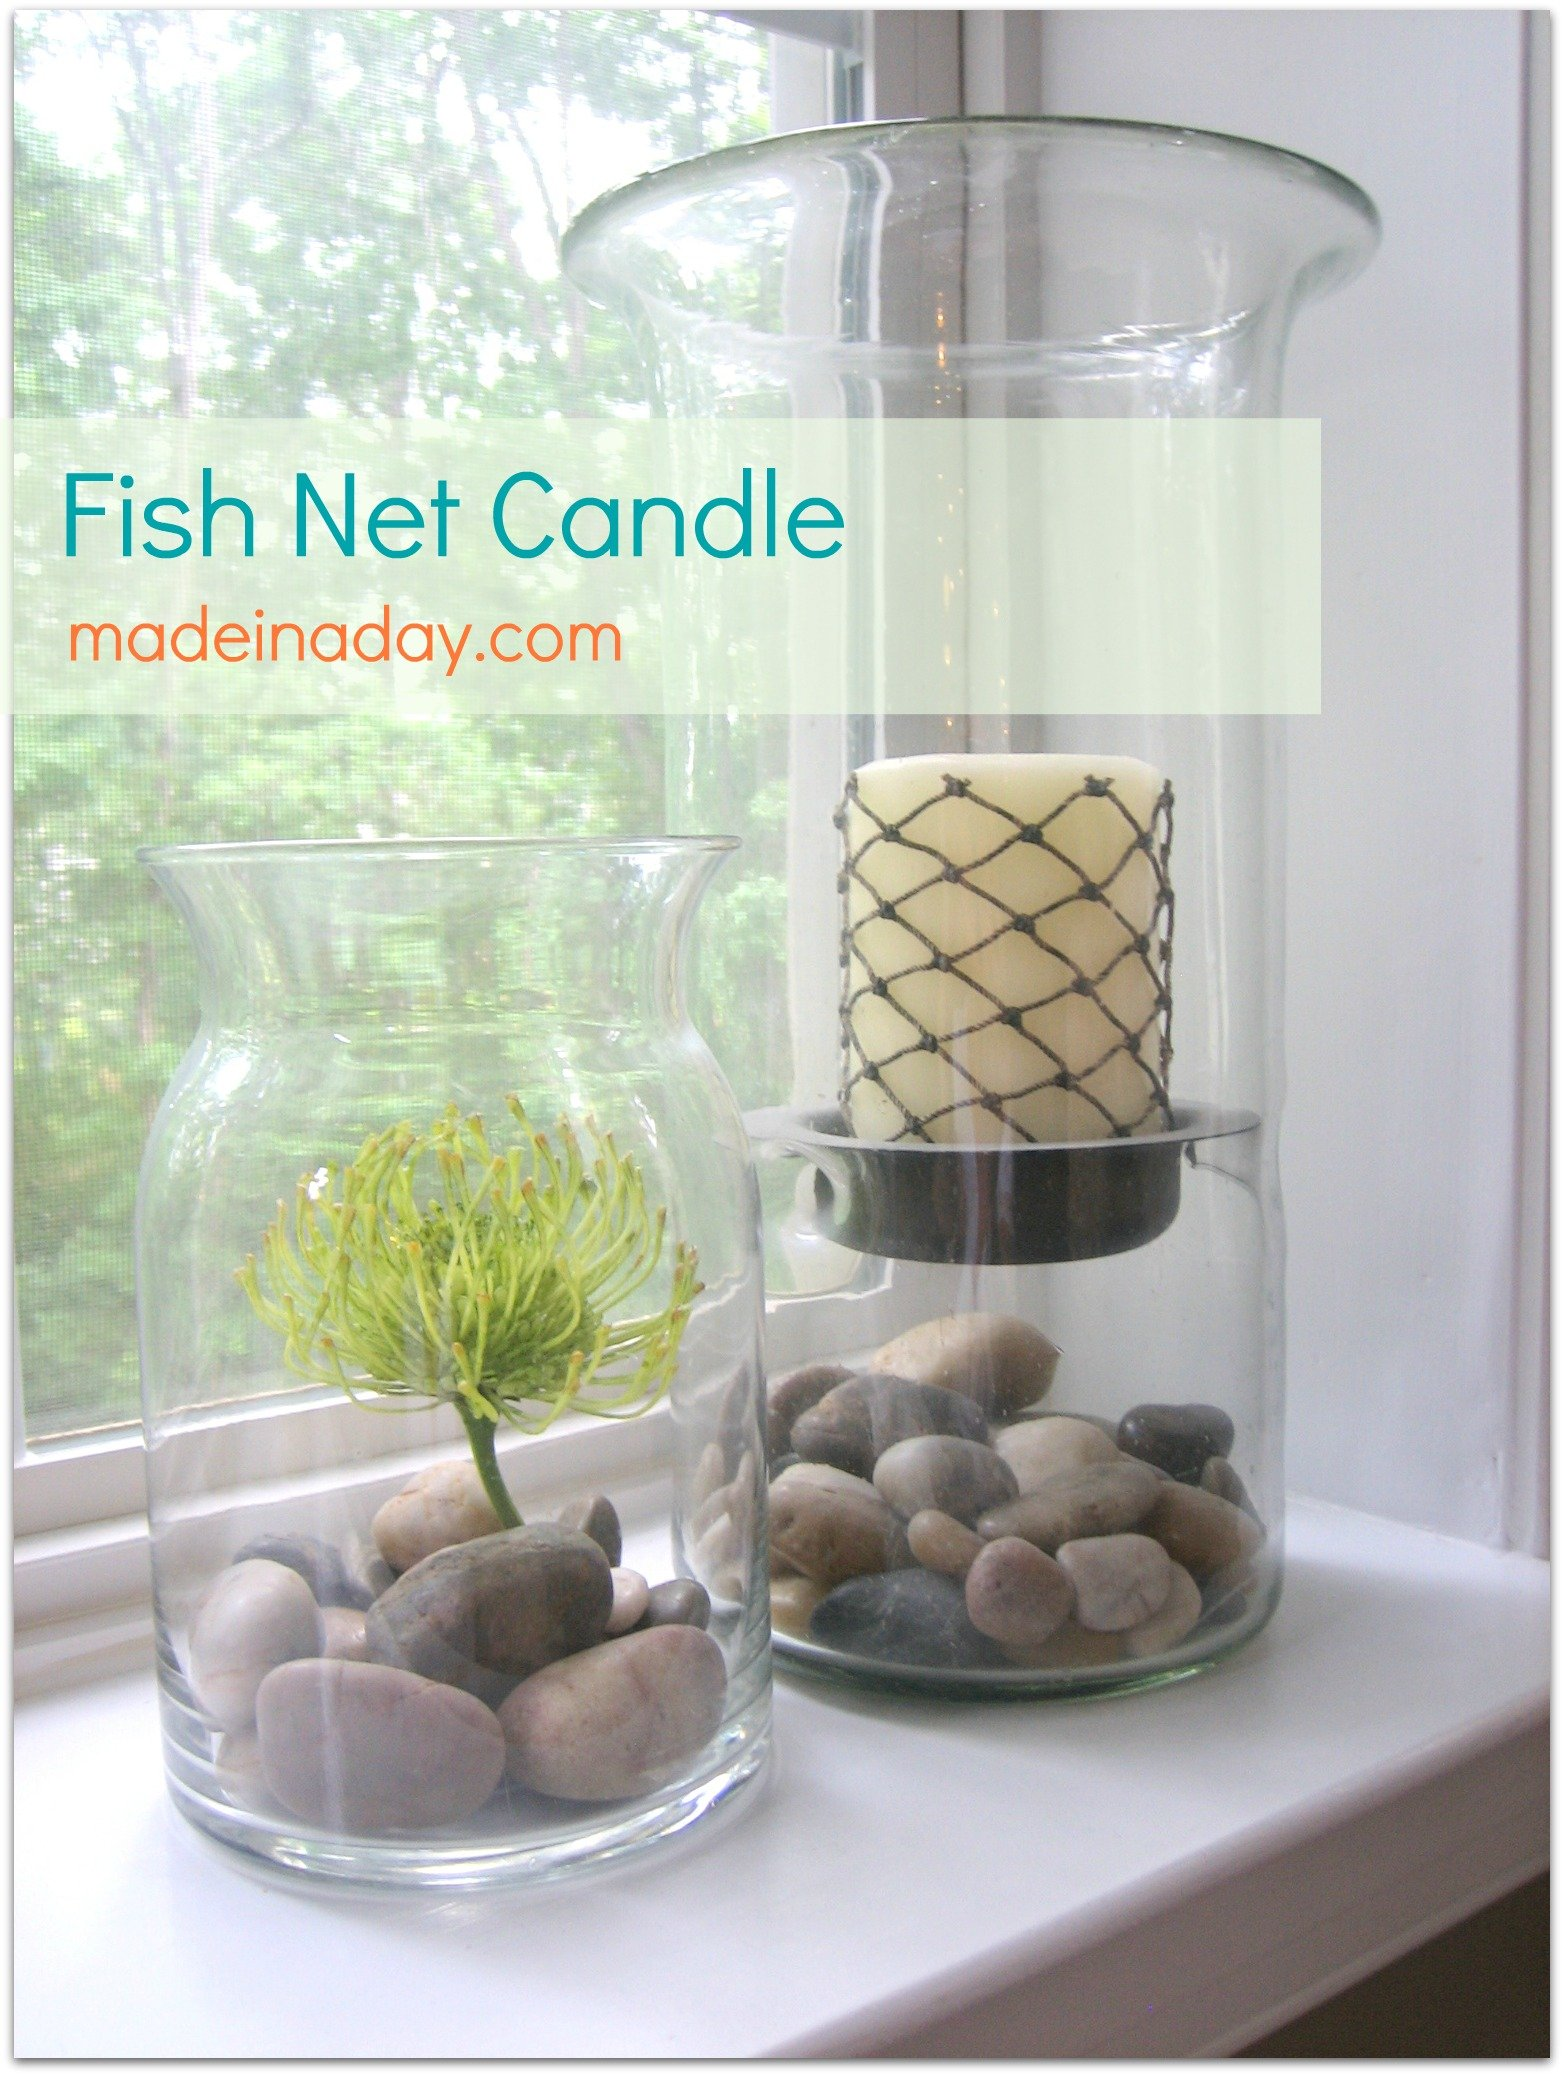 fish net candle